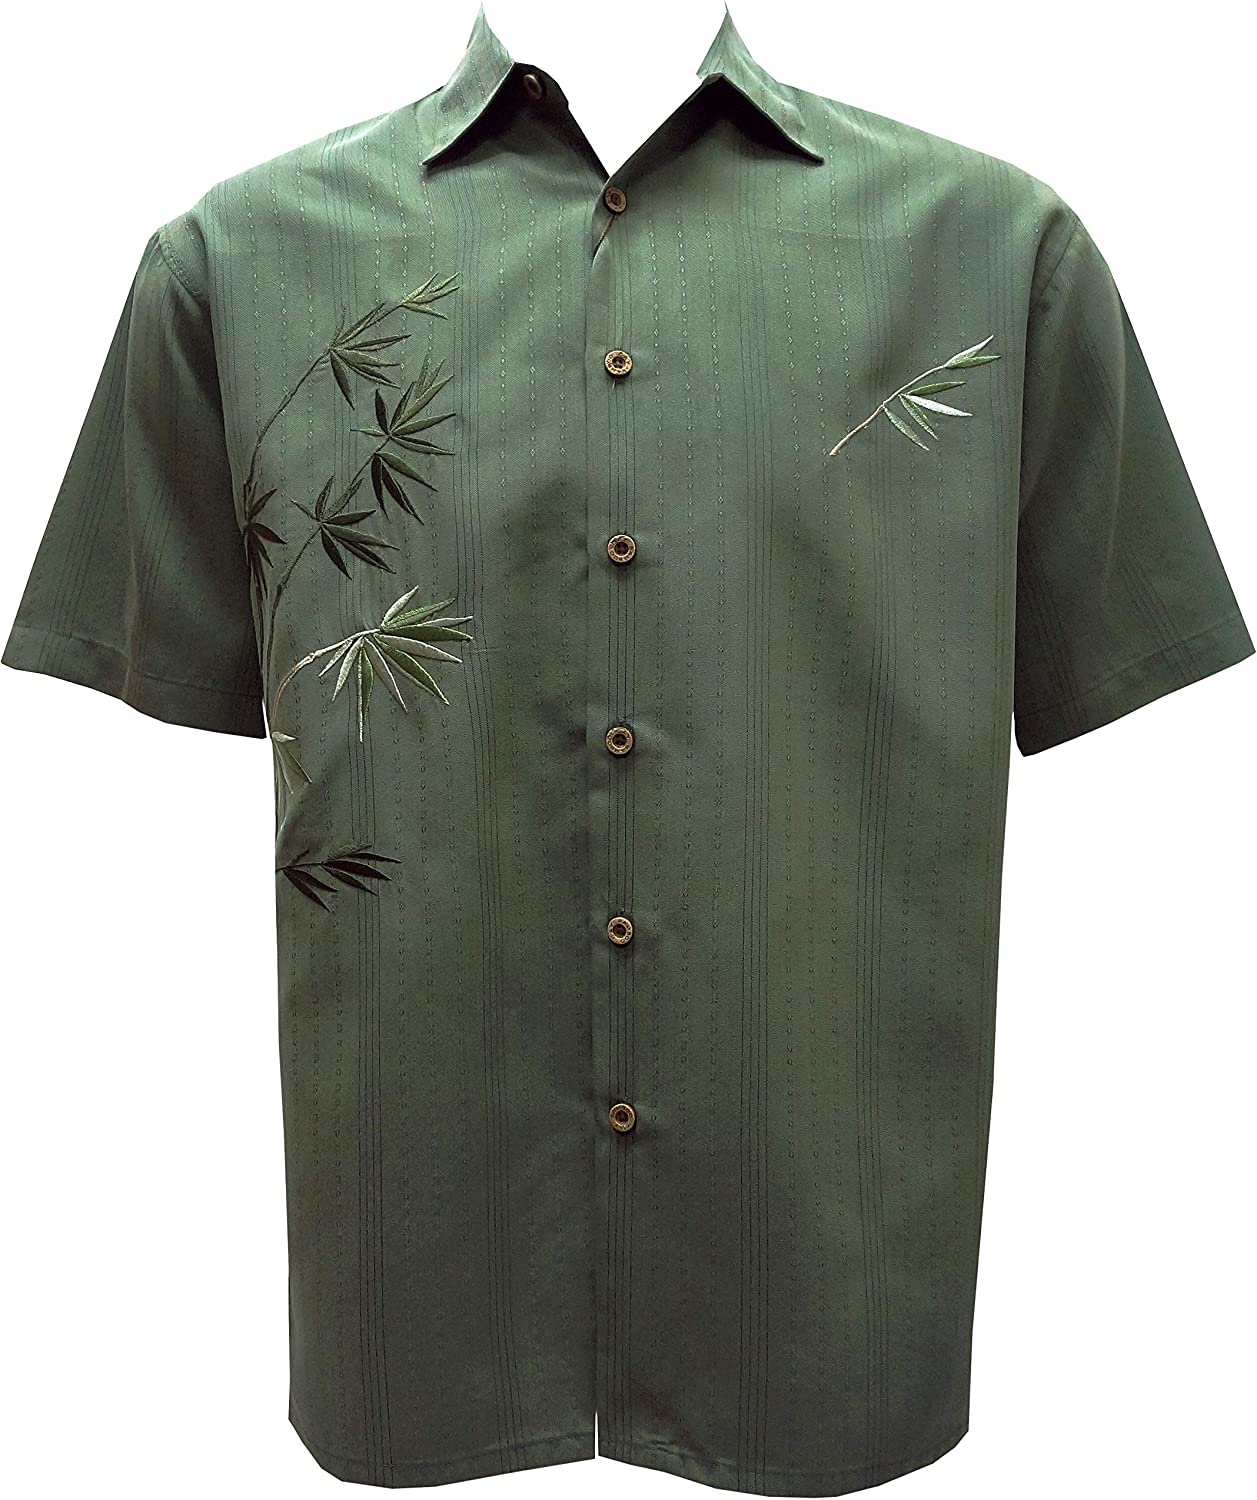 Bamboo Cay Mens Short Sleeve Flying Bamboos Casual Embroidered Woven Shirt